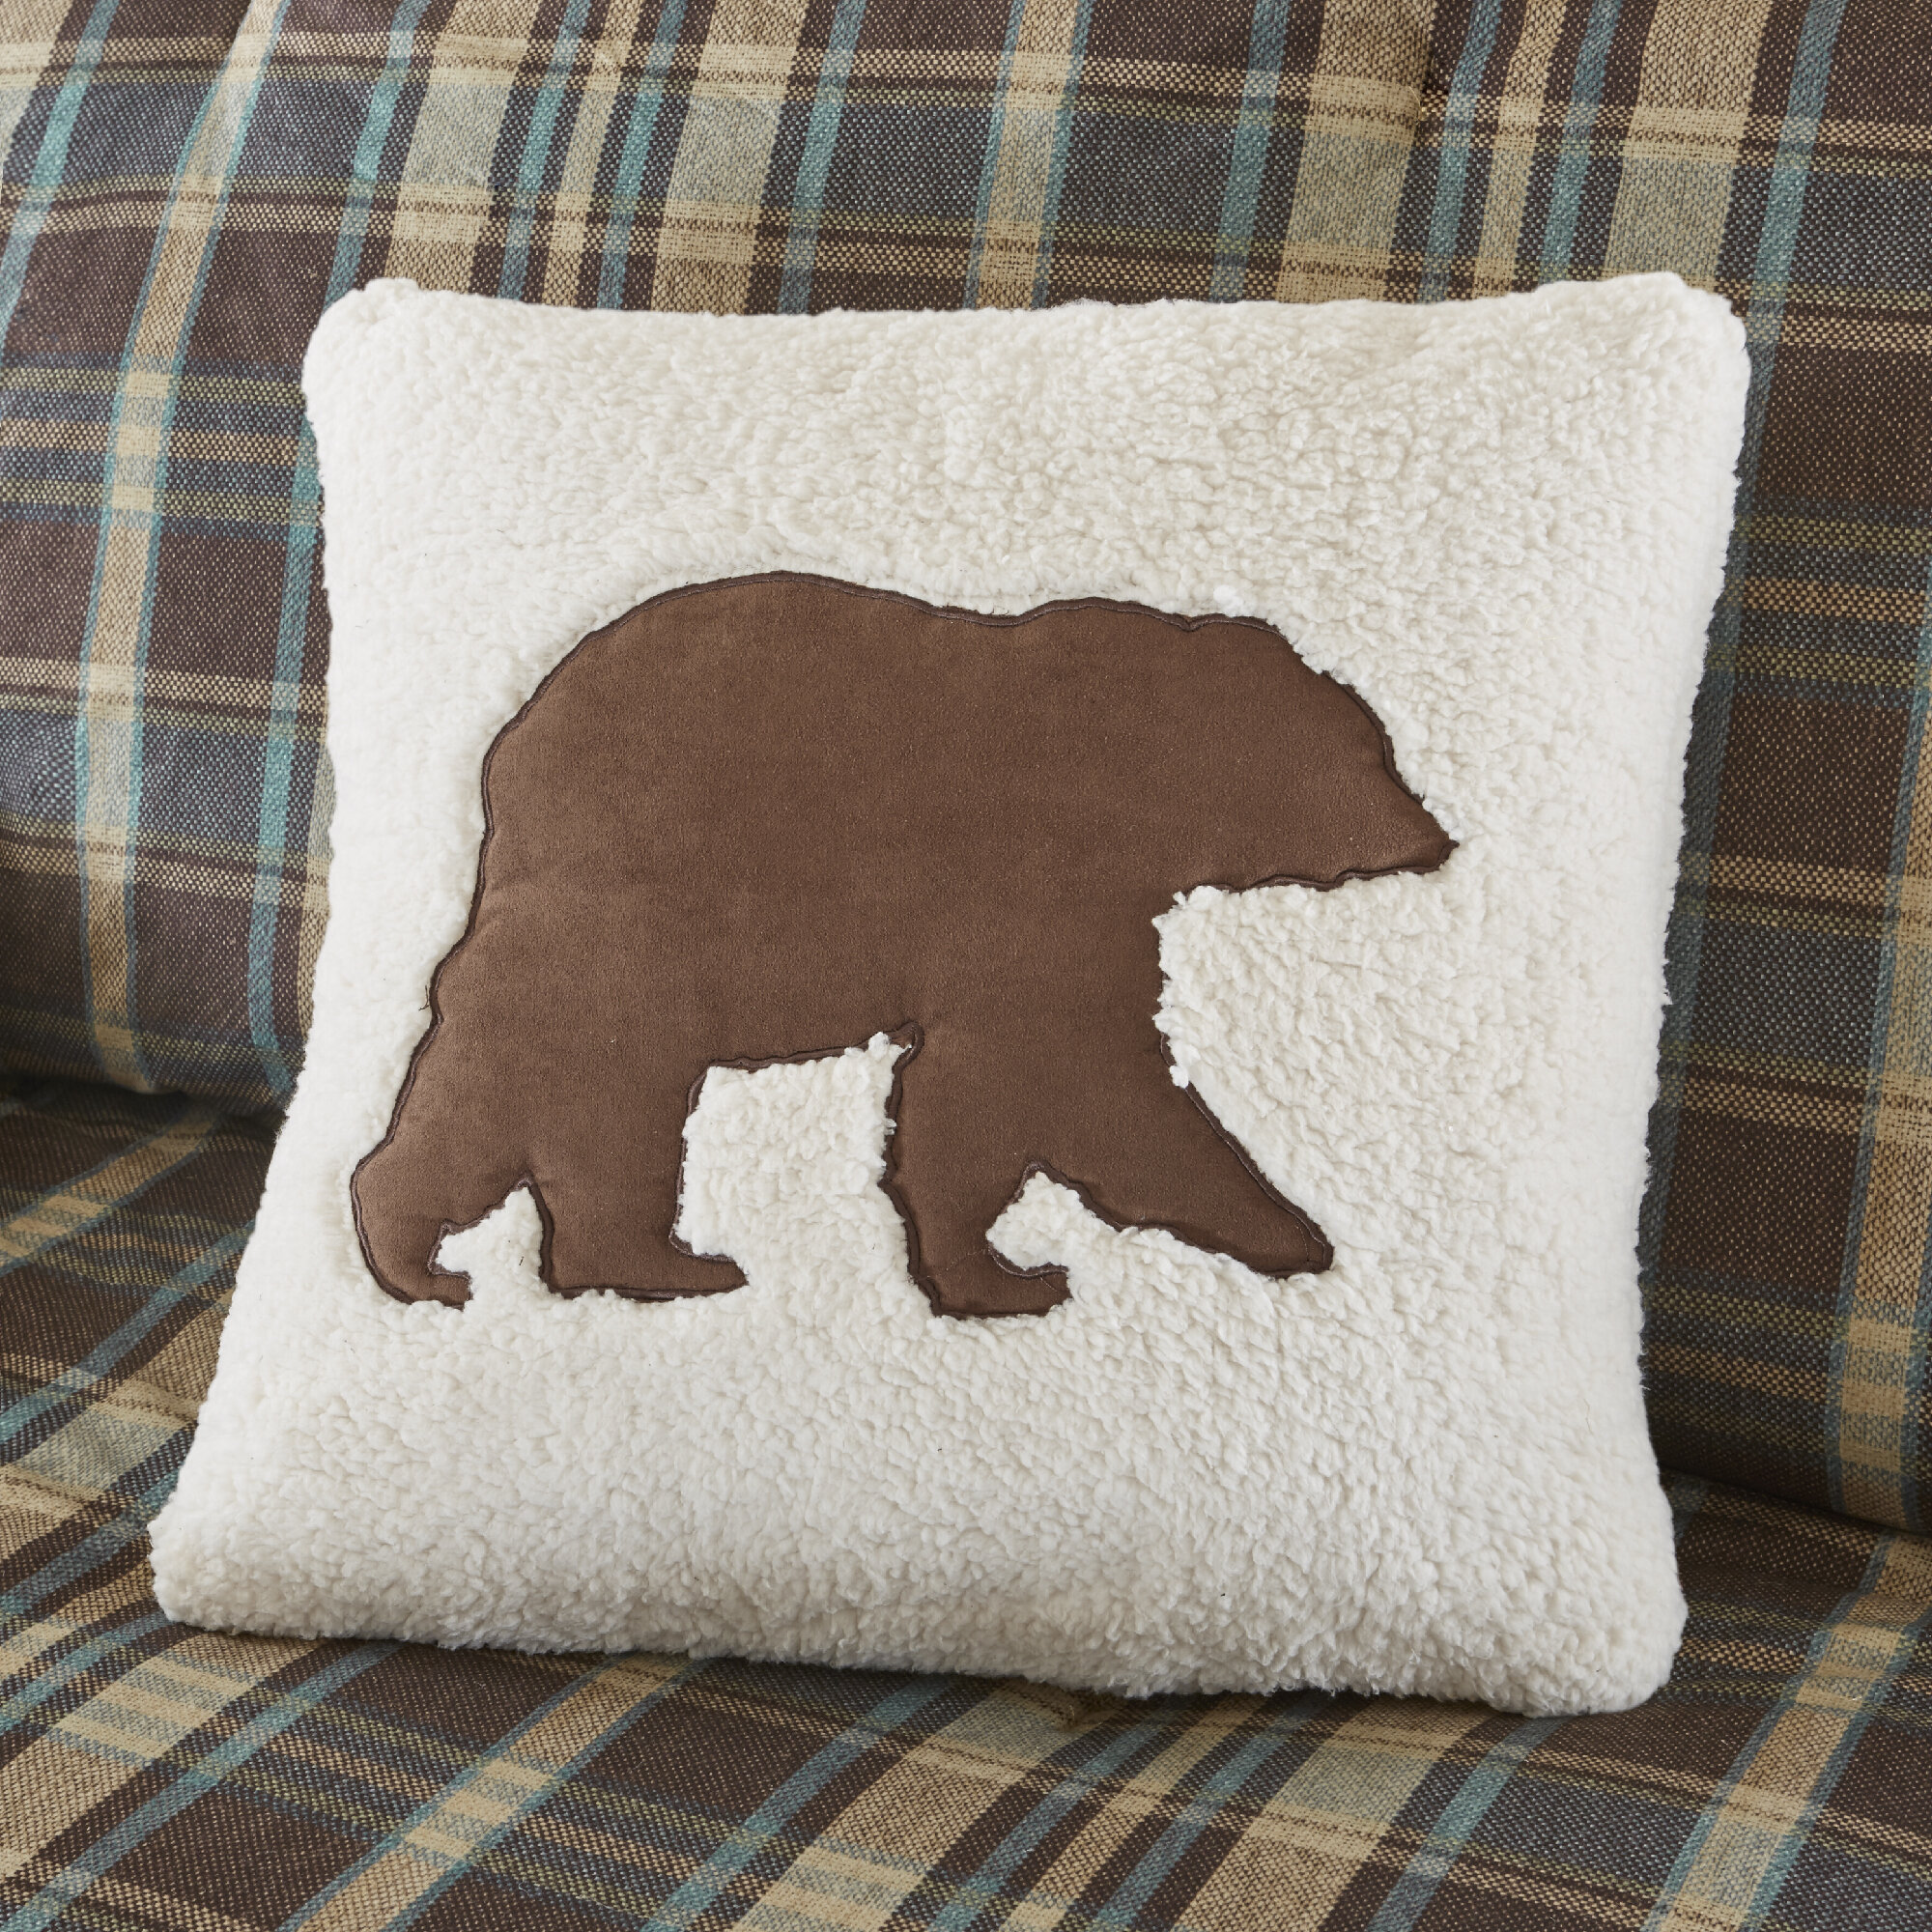 Woolrich Hadley Berber Leather Suede Throw Pillow